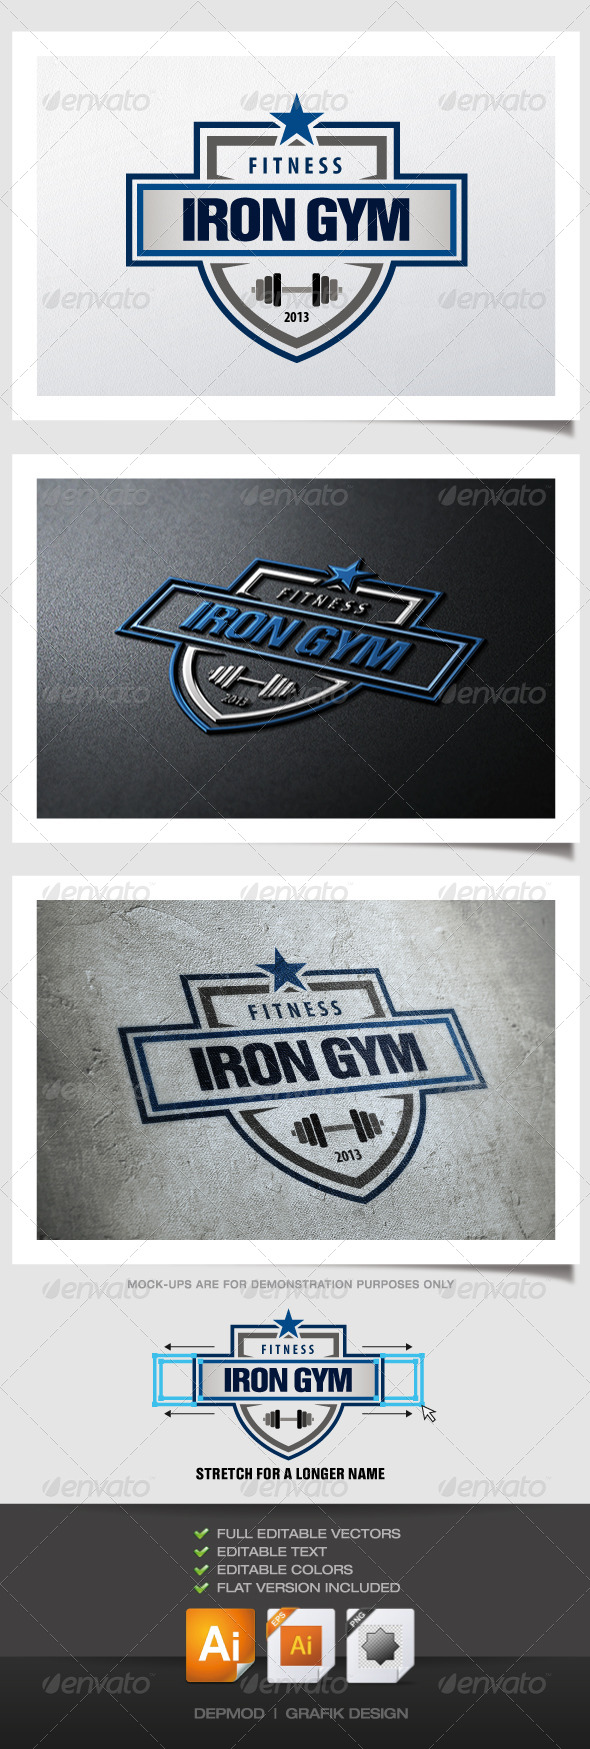 GraphicRiver Iron Gym Logo 4822528